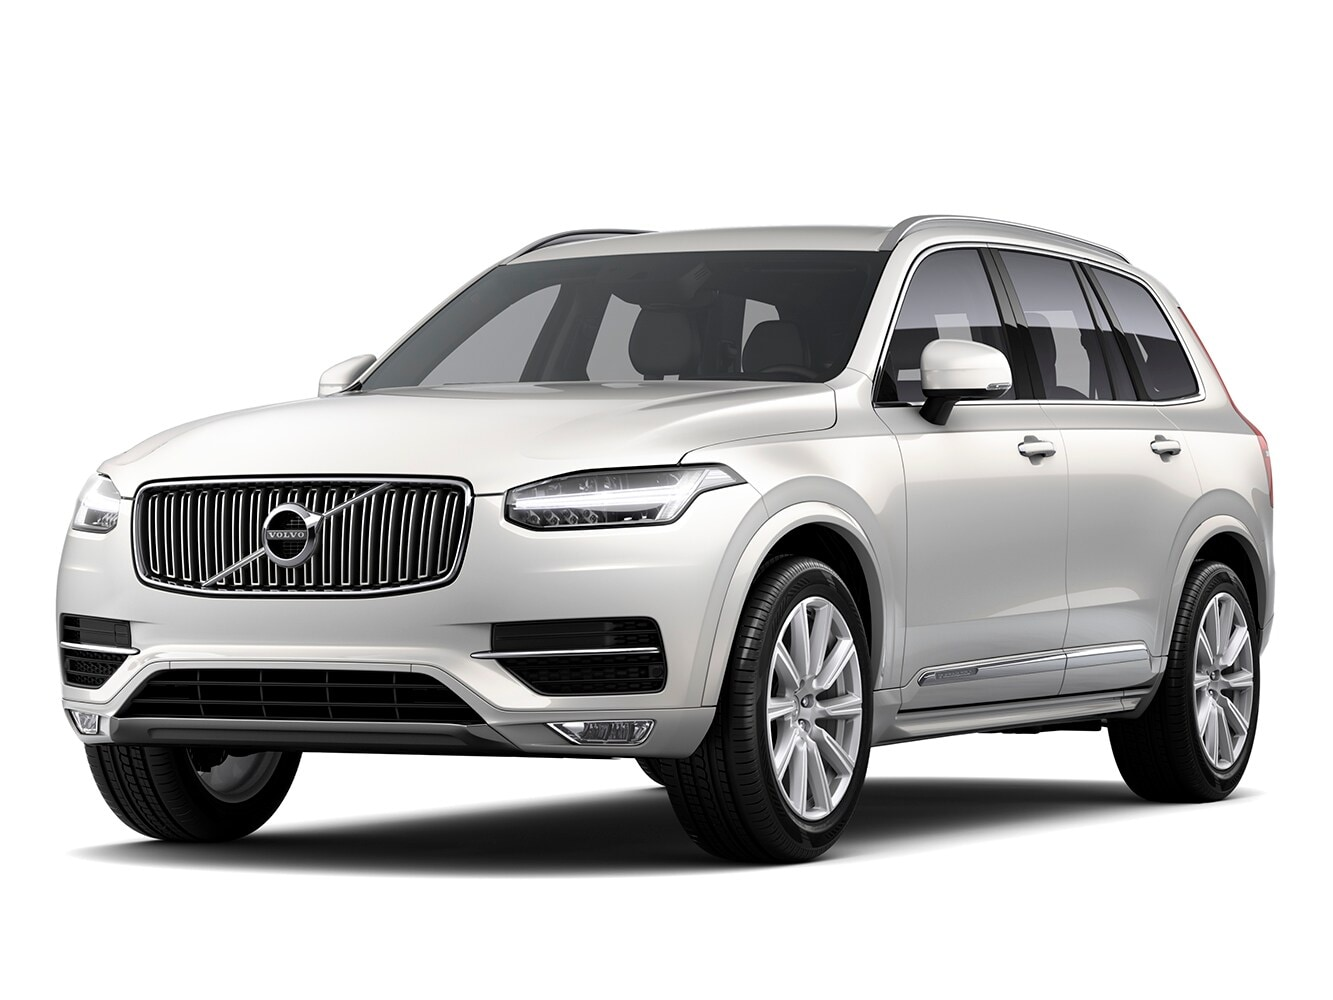 Versión Volvo XC90 Inscription